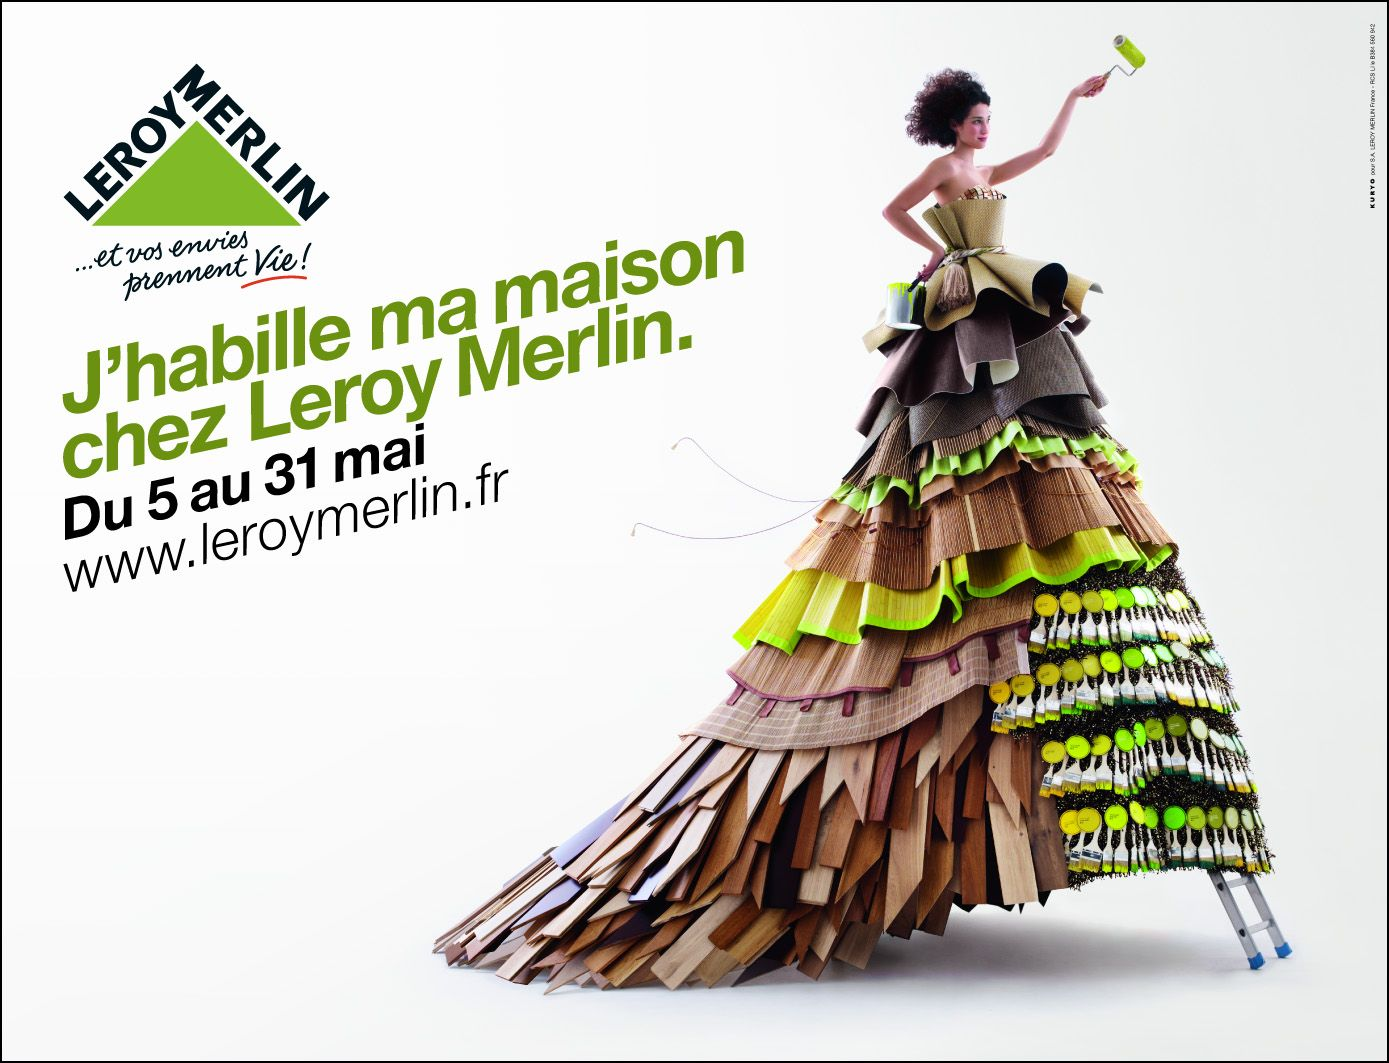 Une affiche pour Leroy Merlin | Merlin, Advertising, Household